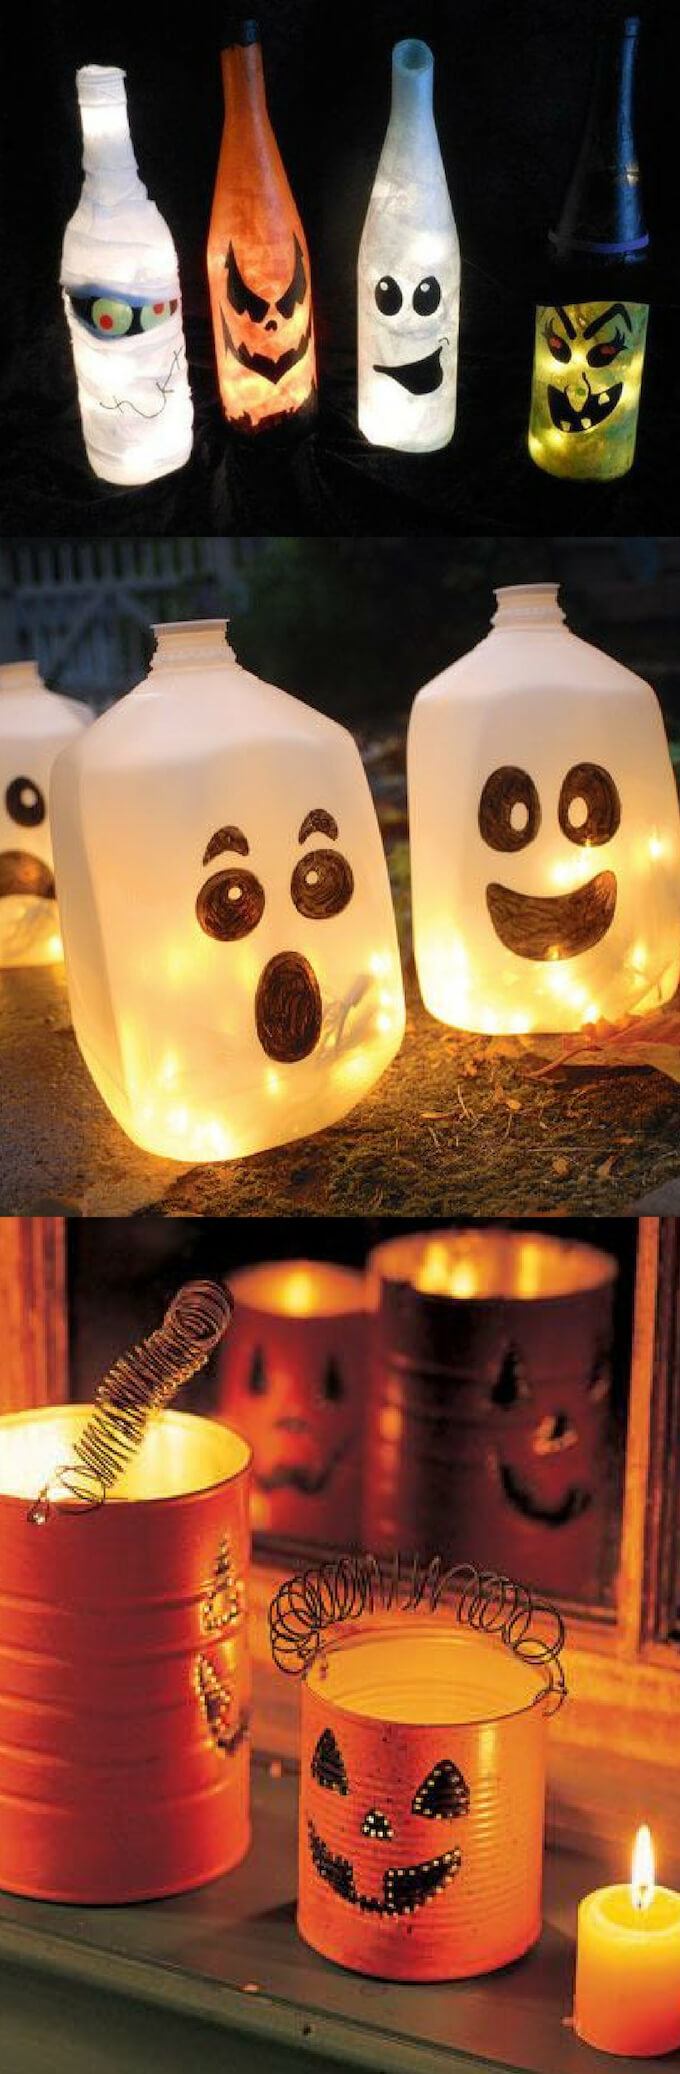 Reuse Halloween decorations   How to Have a Green Halloween: Ideas to Make This Halloween More Eco-Friendly